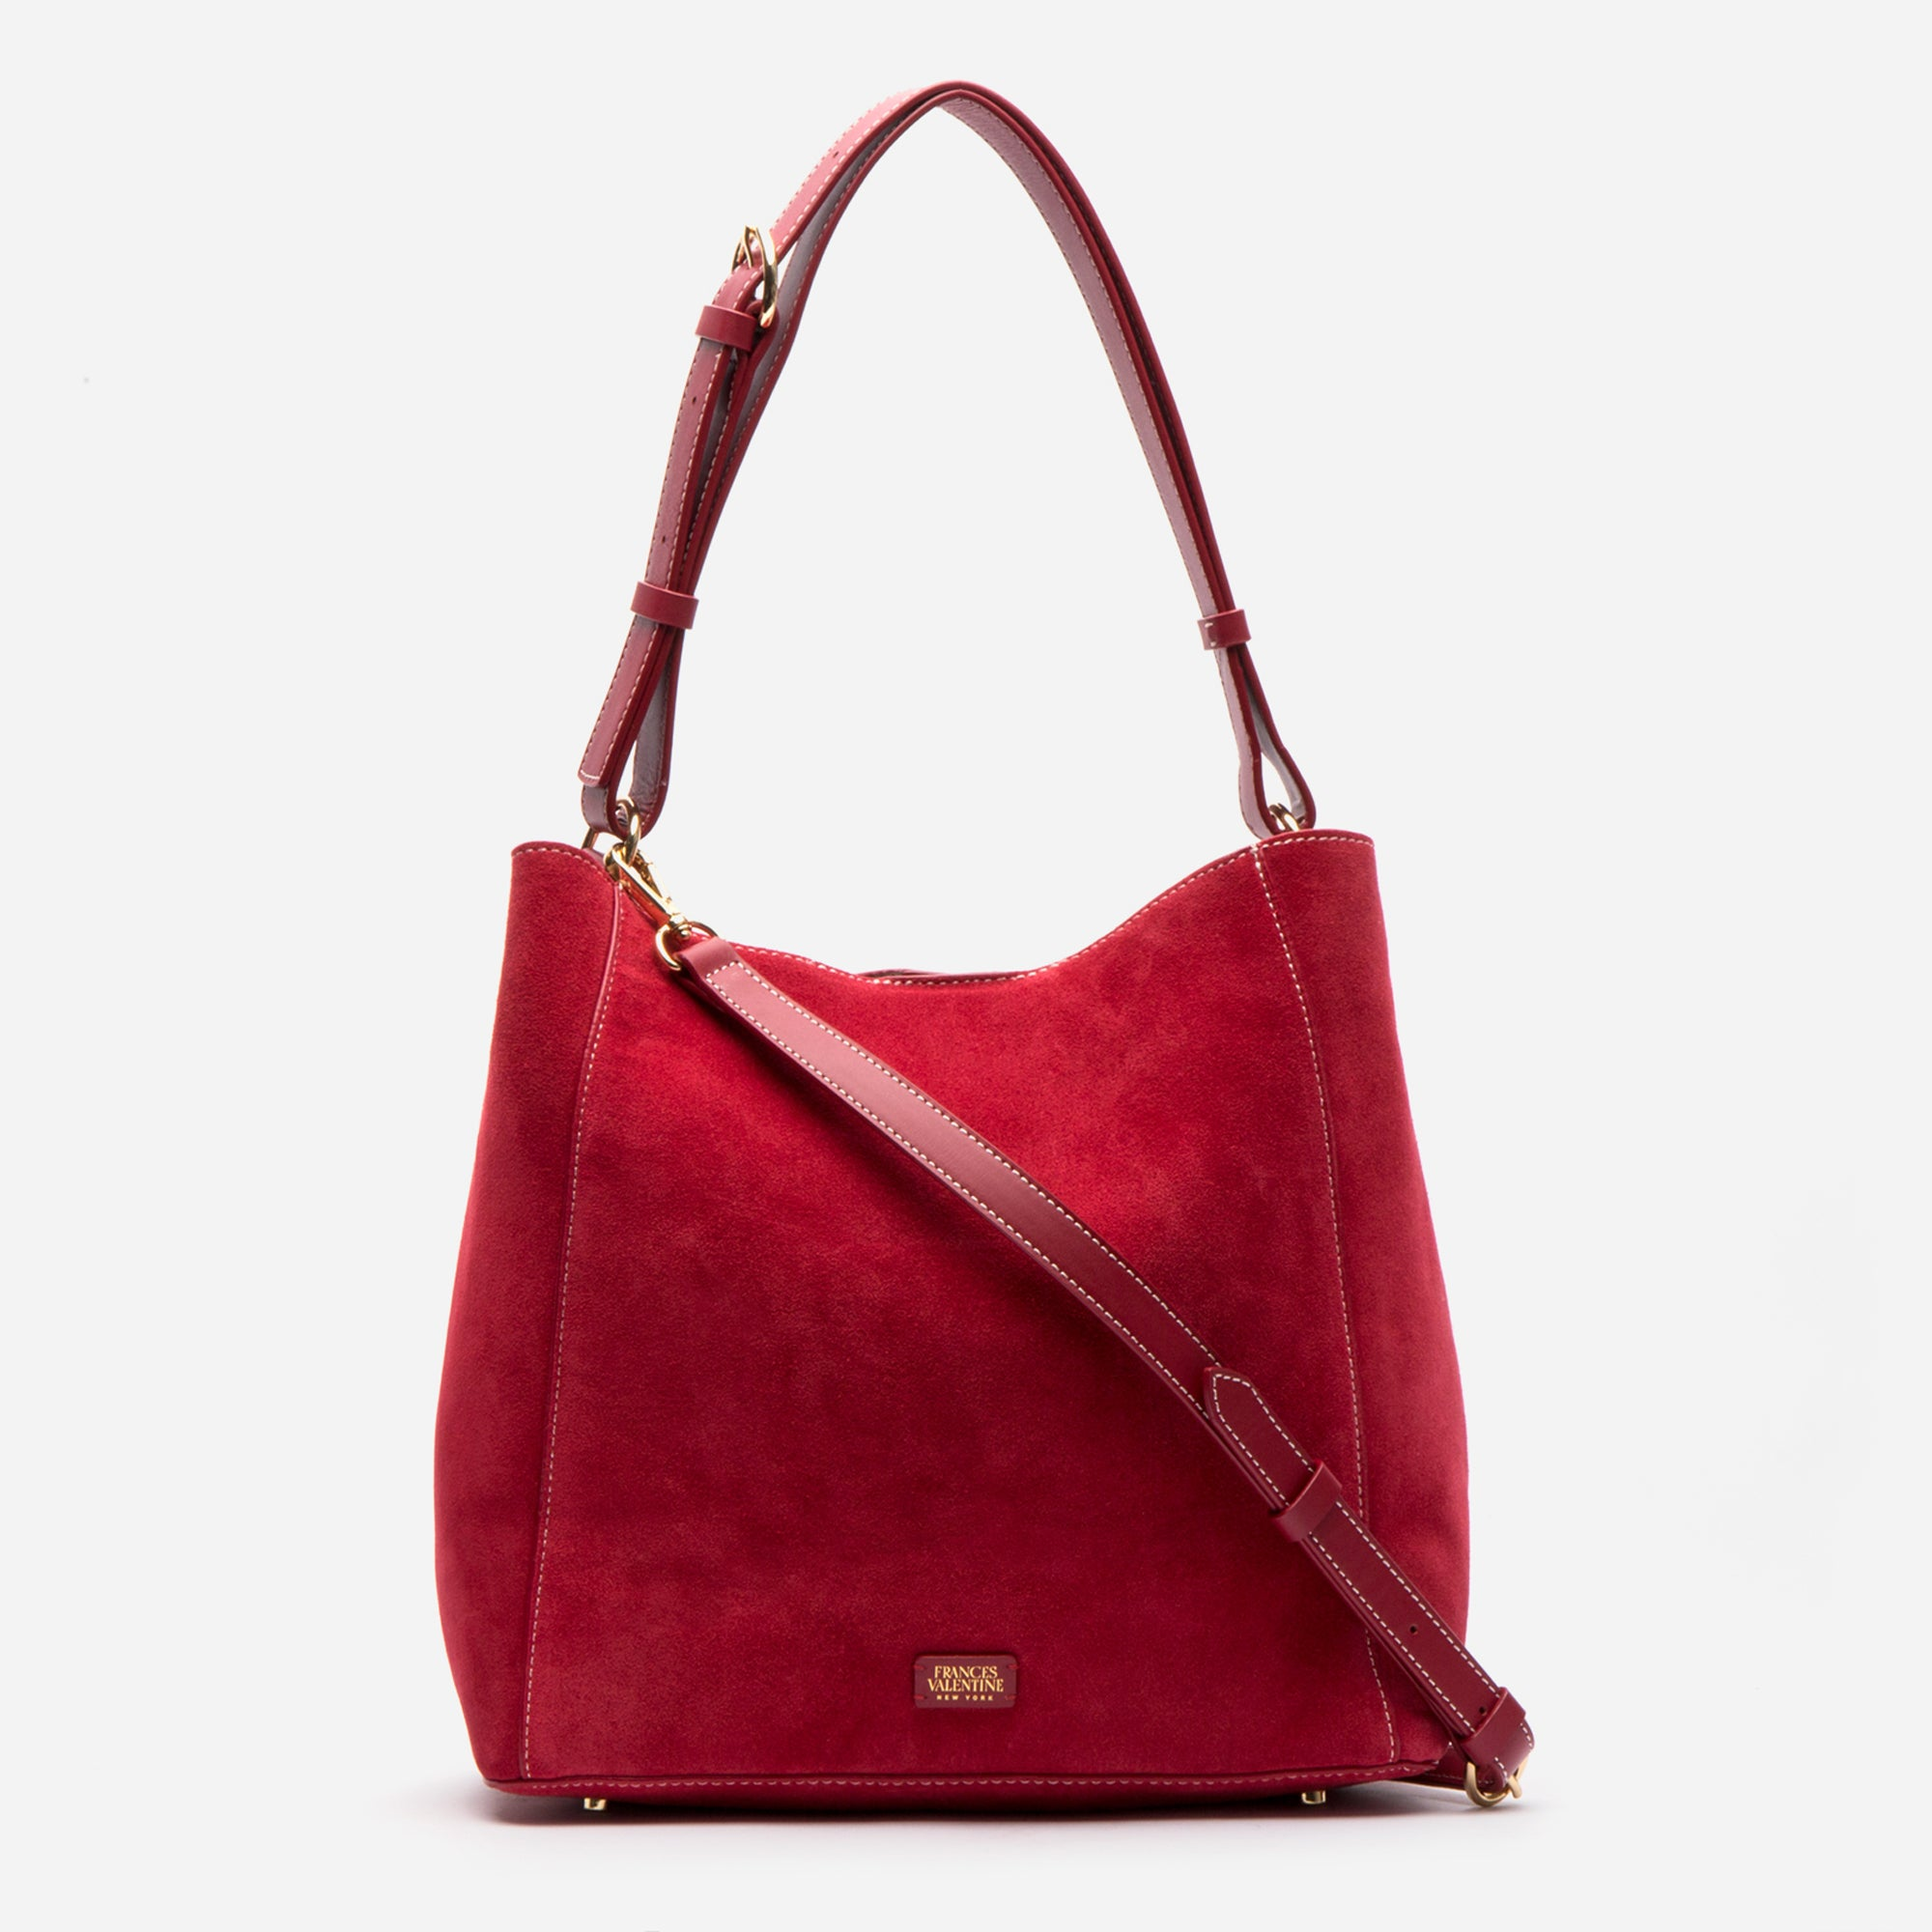 June Hobo Handbag Suede Red